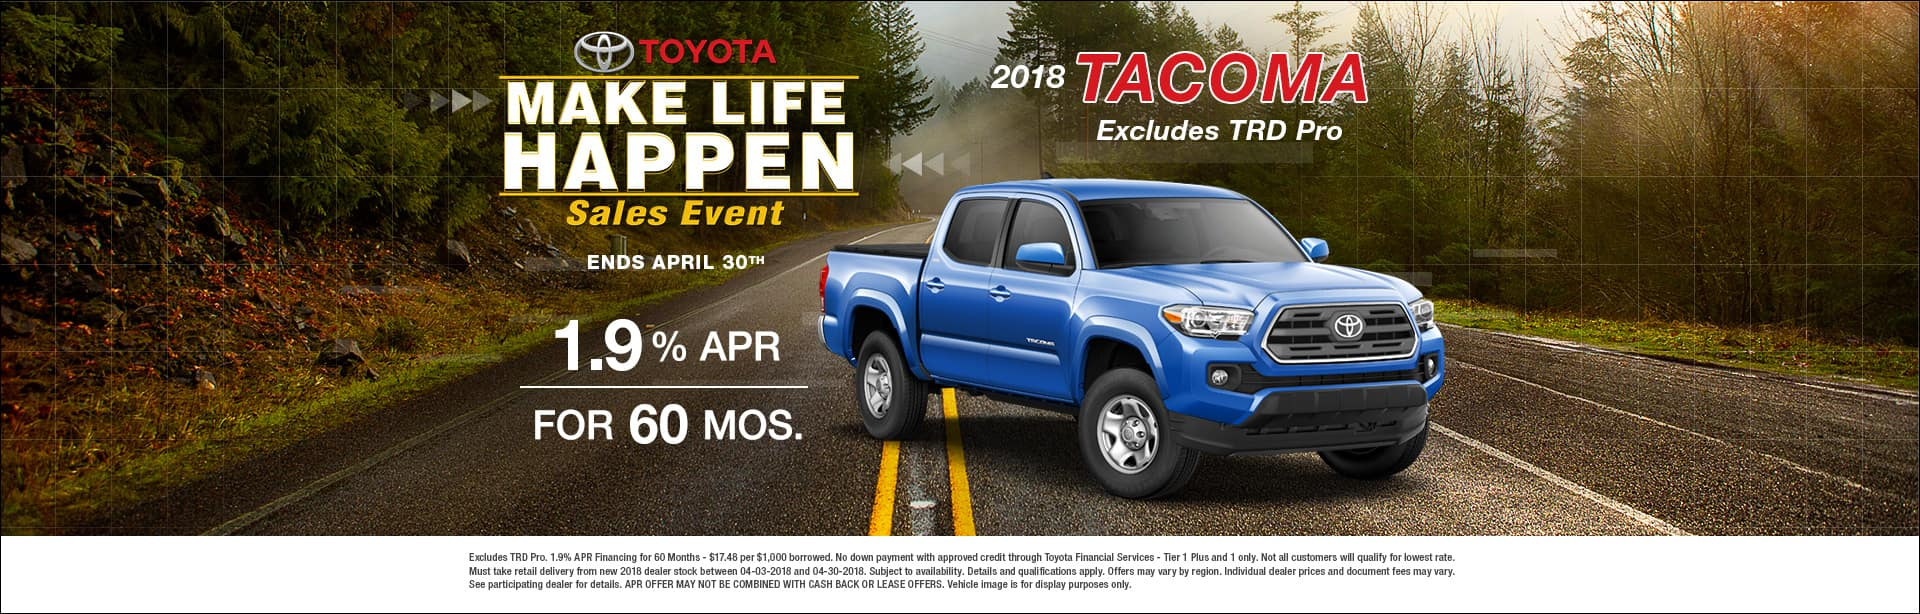 Tacoma Special Finance Offer Cain Toyota North Canton Ohio